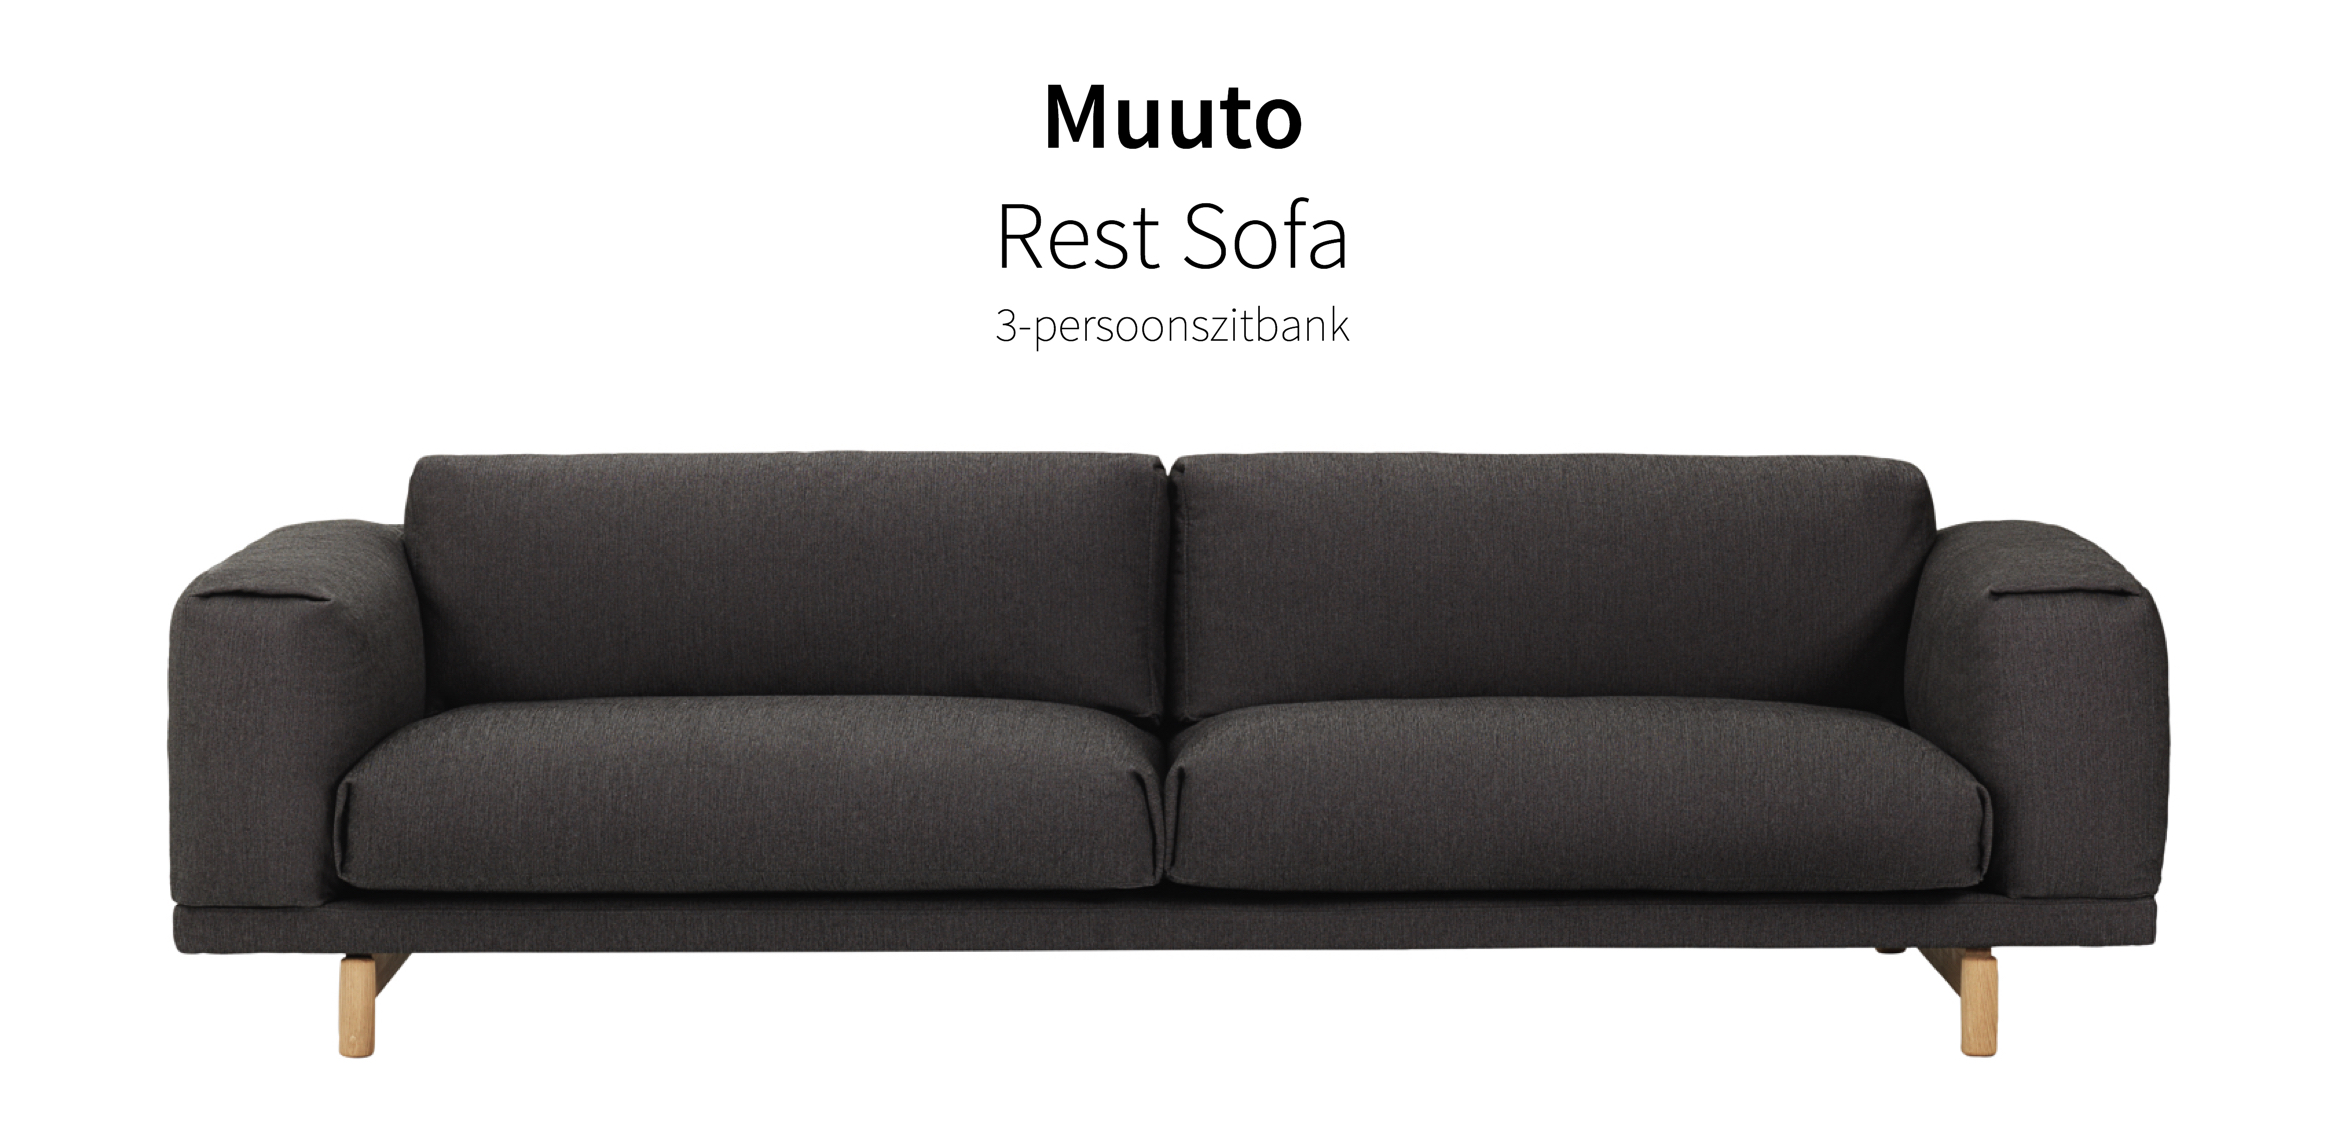 muuto rest sofa 3 zitsbank. Black Bedroom Furniture Sets. Home Design Ideas